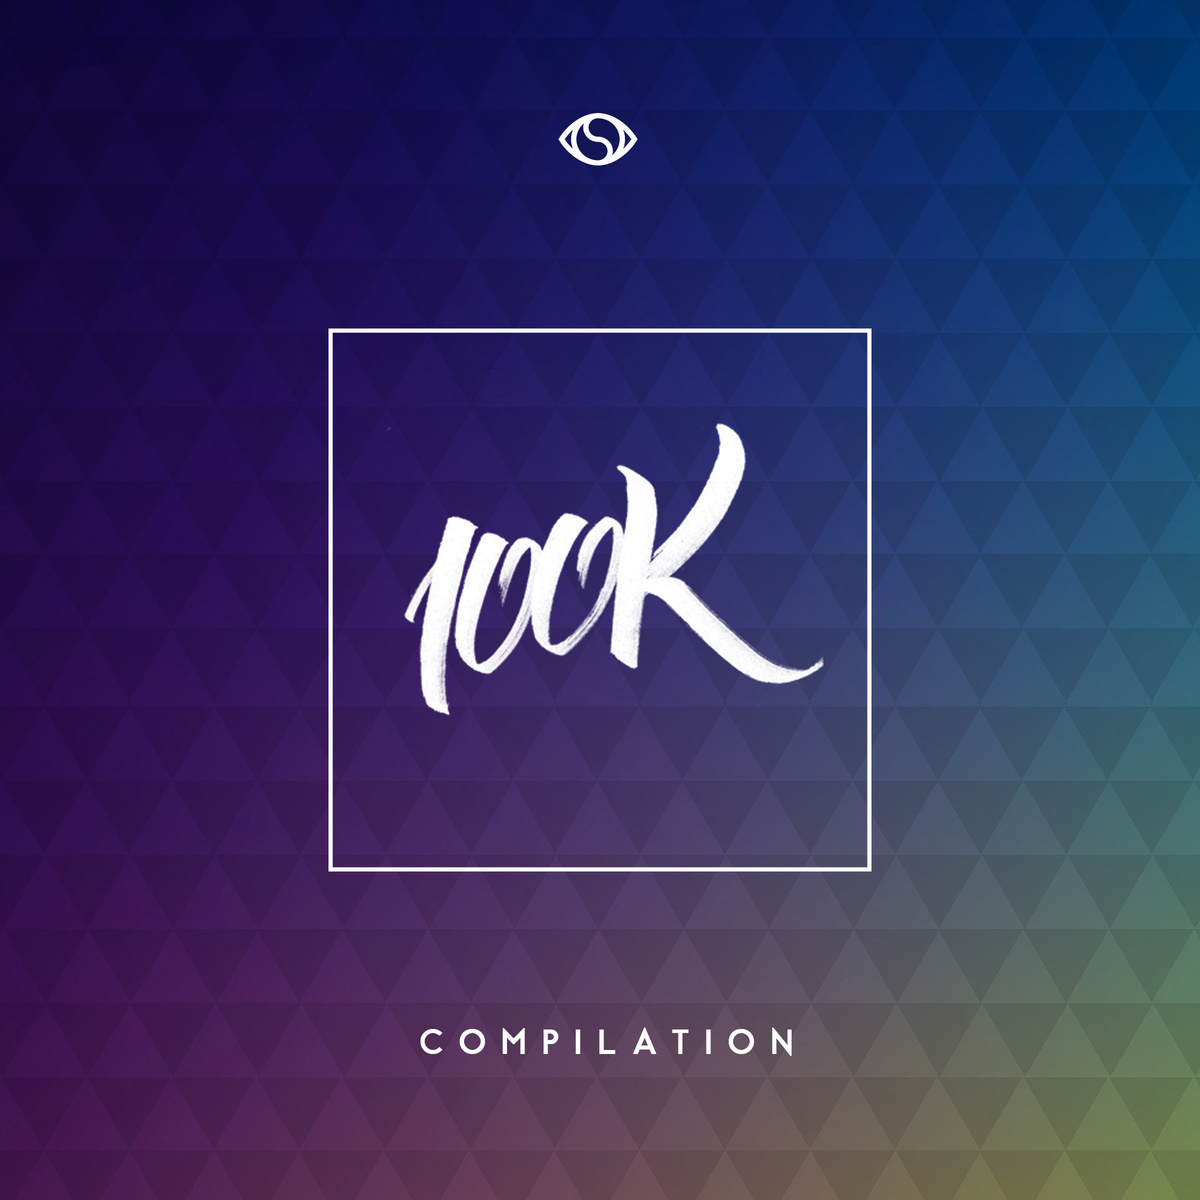 soulection compilation 100k cover